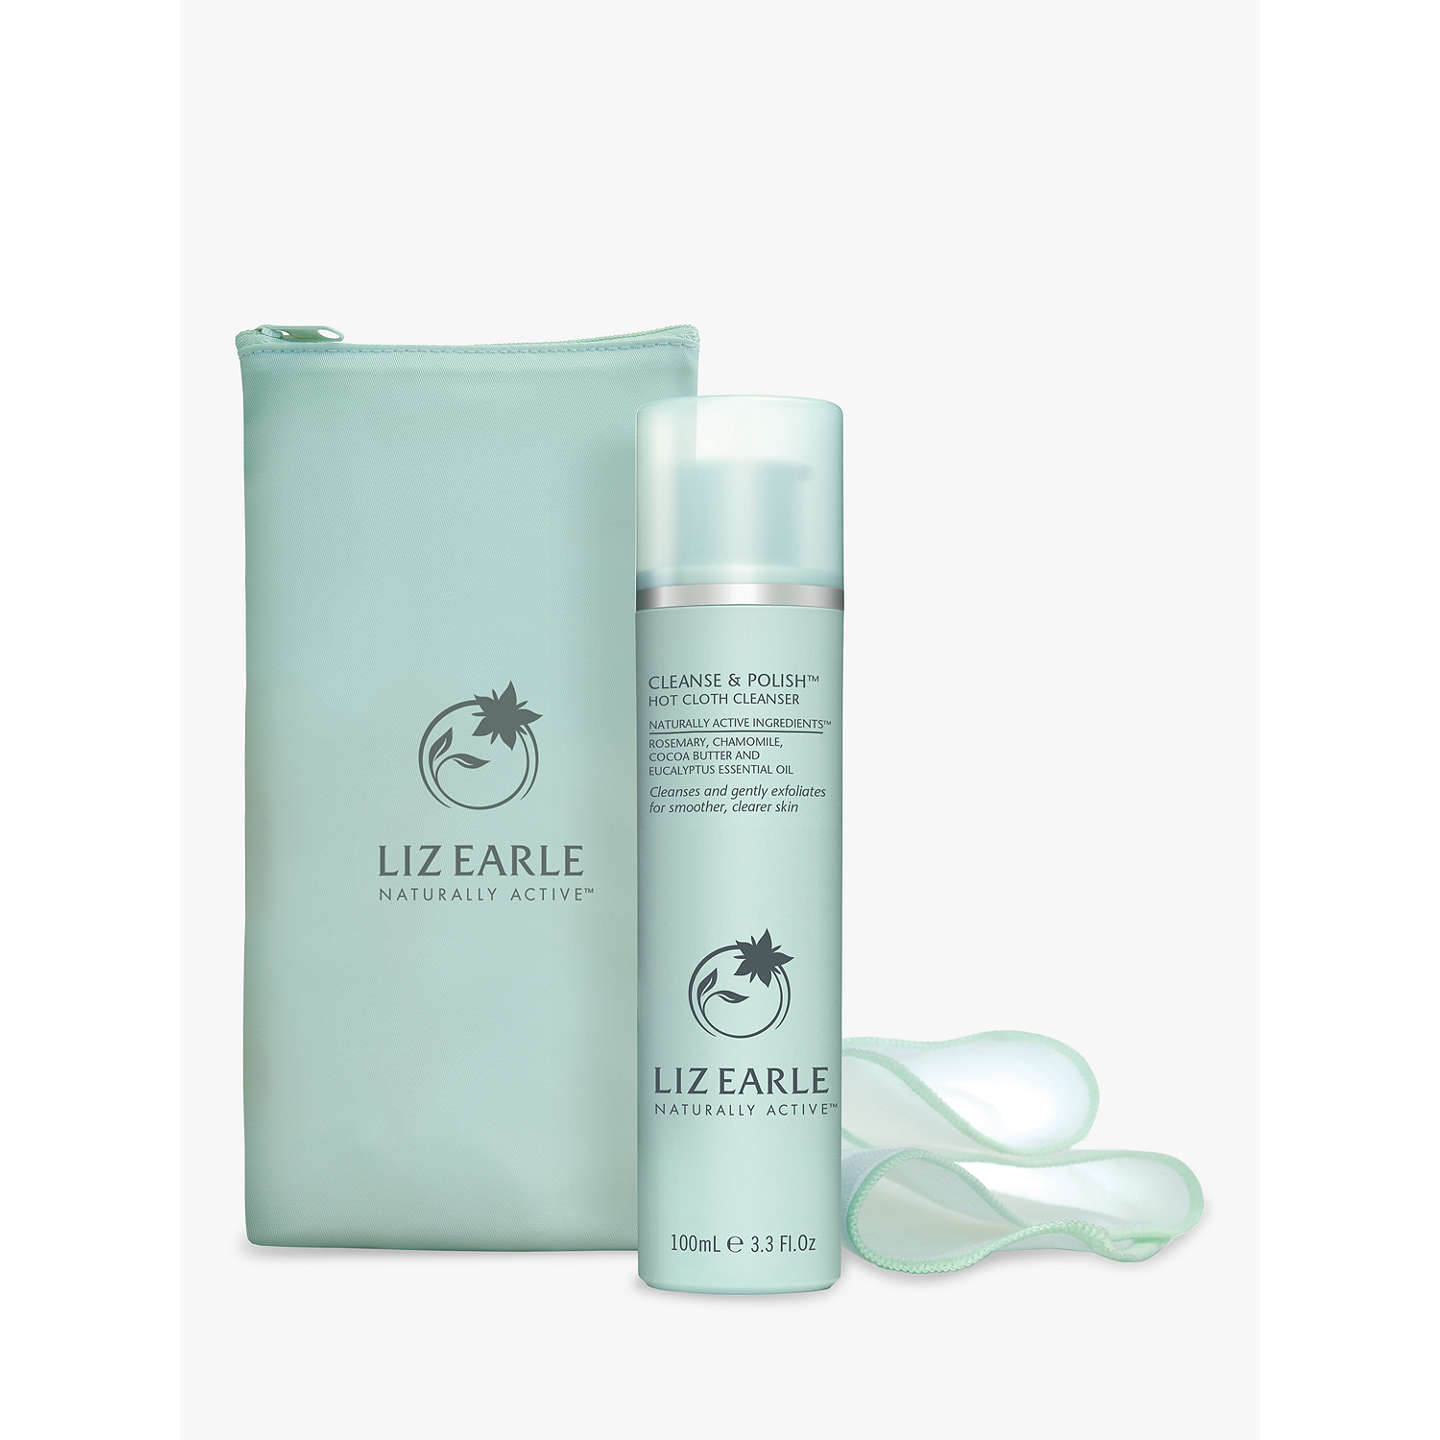 BuyLiz Earle Cleanse & Polish™ Hot Cloth Cleanser, 100ml with 2 Muslin Cloths Online at johnlewis.com